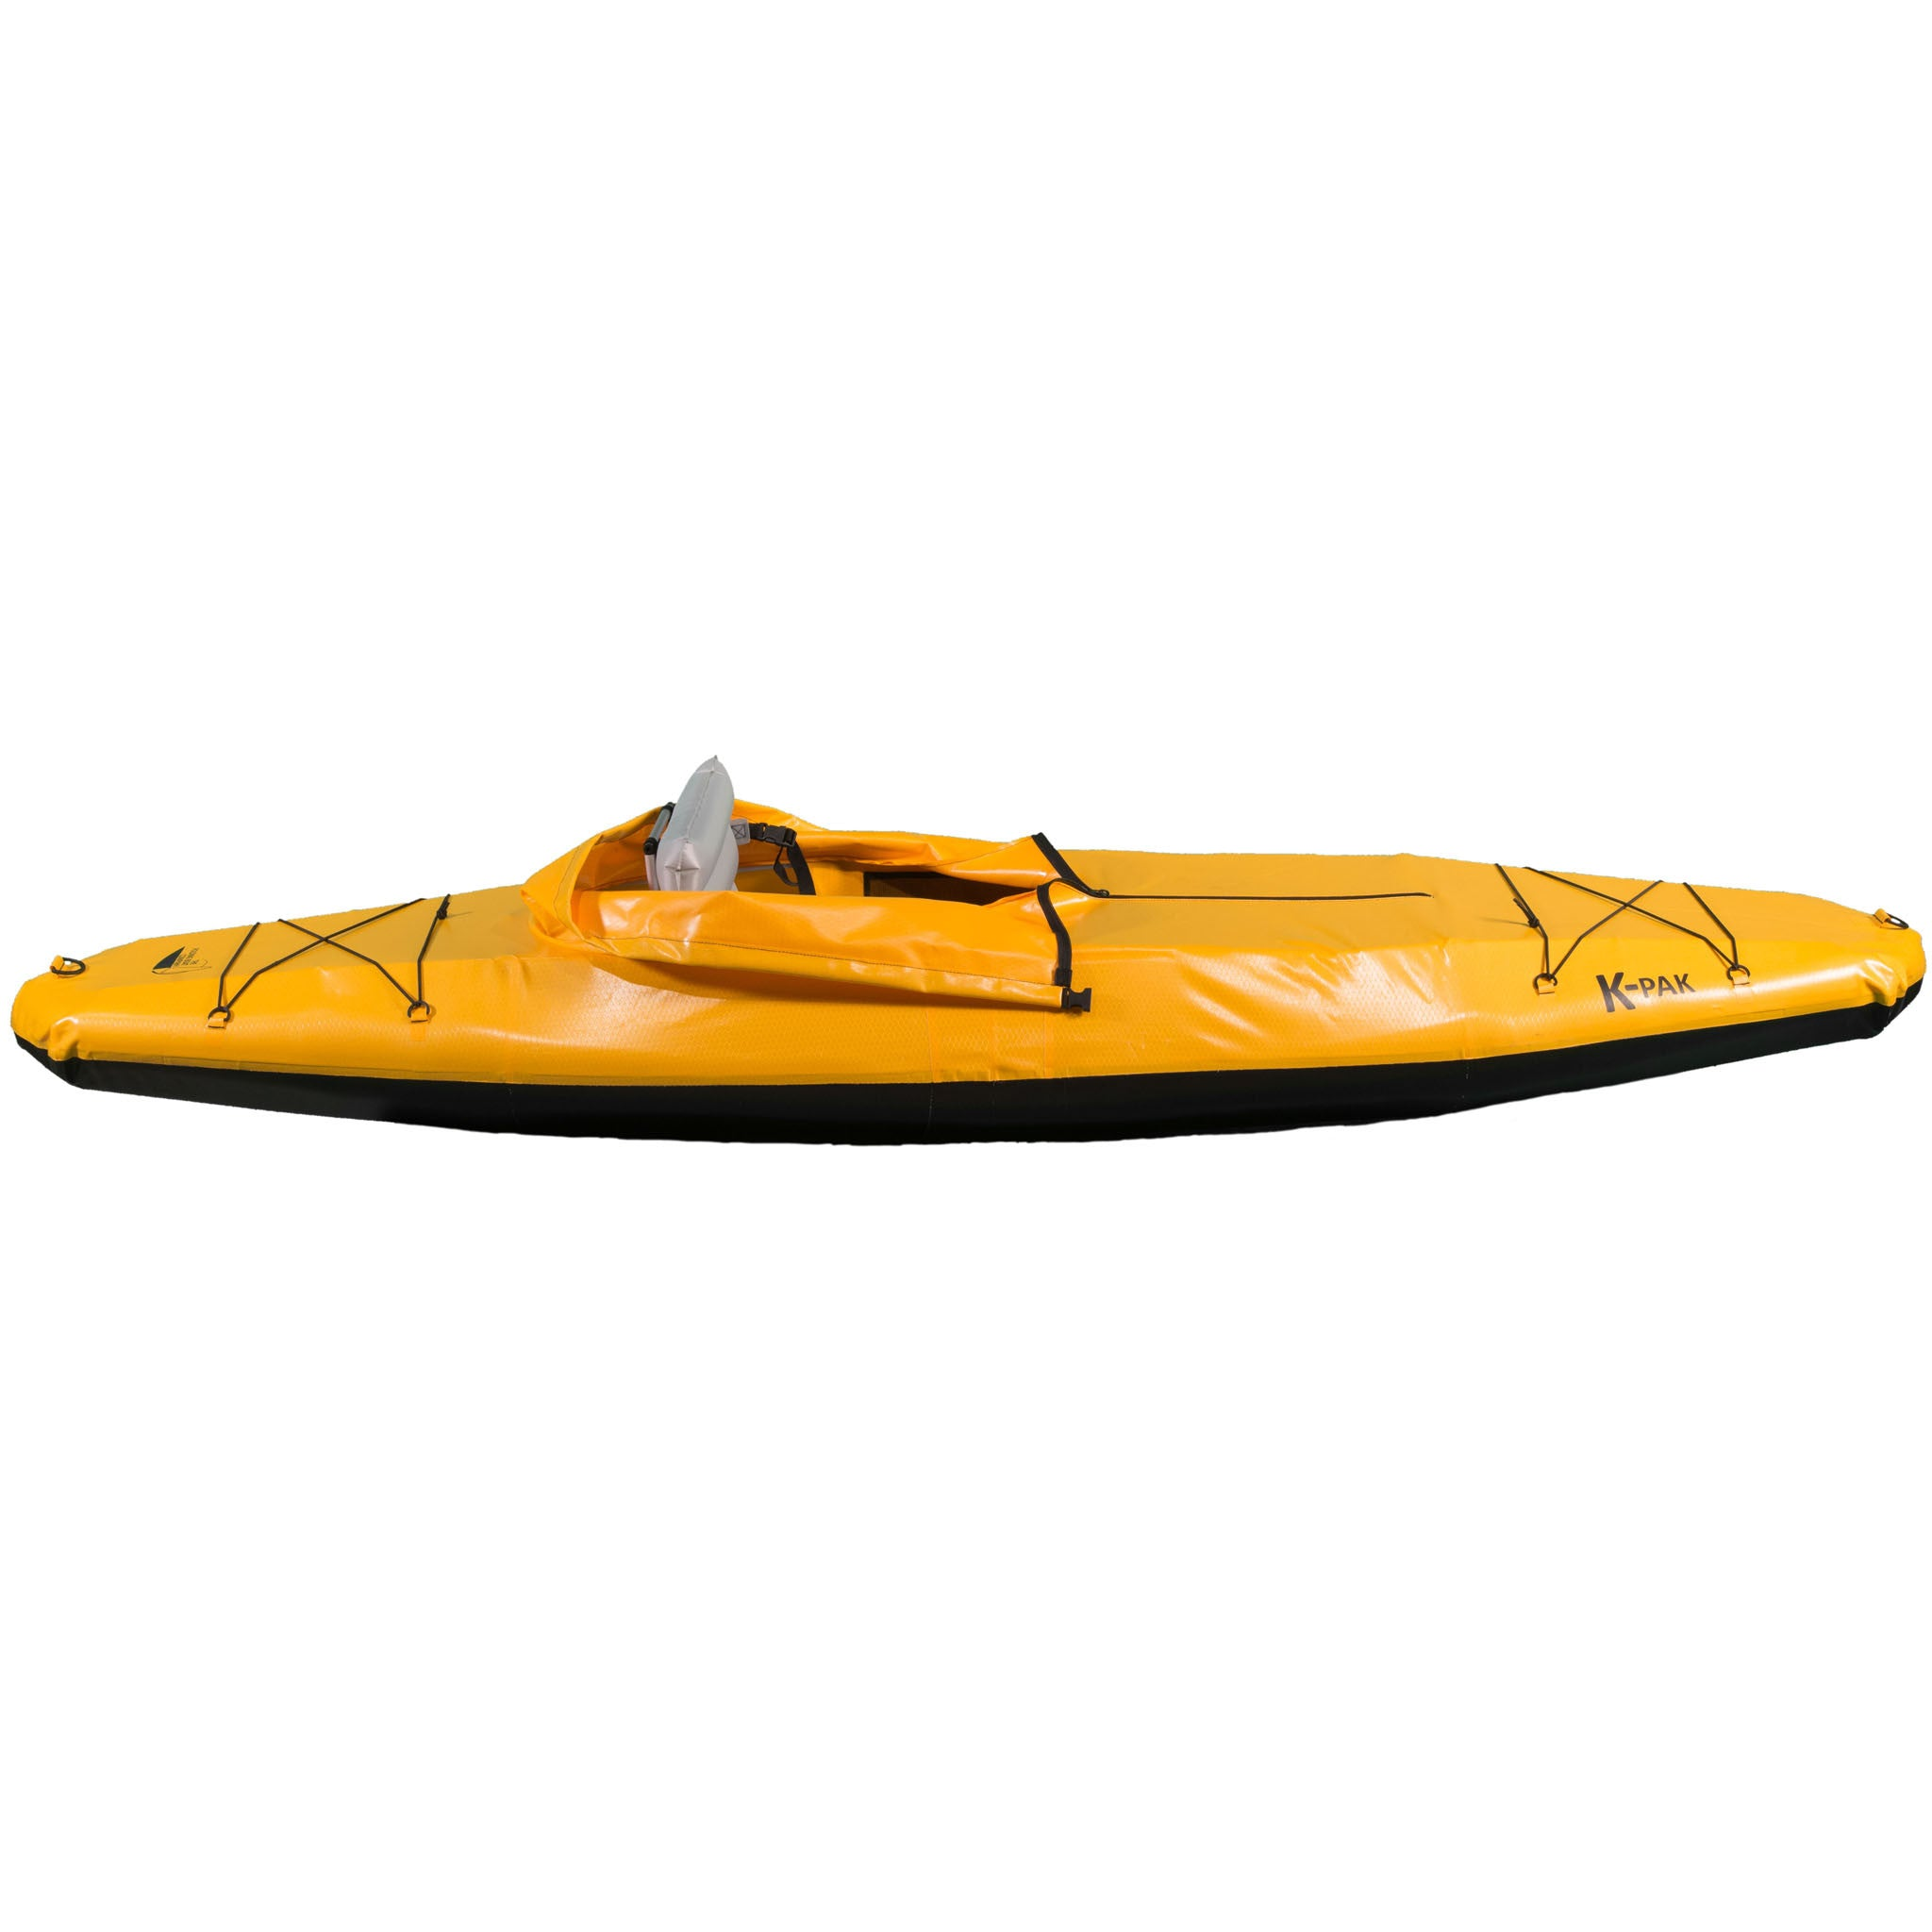 K-PAK foldable kayak in yellow from the side sold by Wee Boats